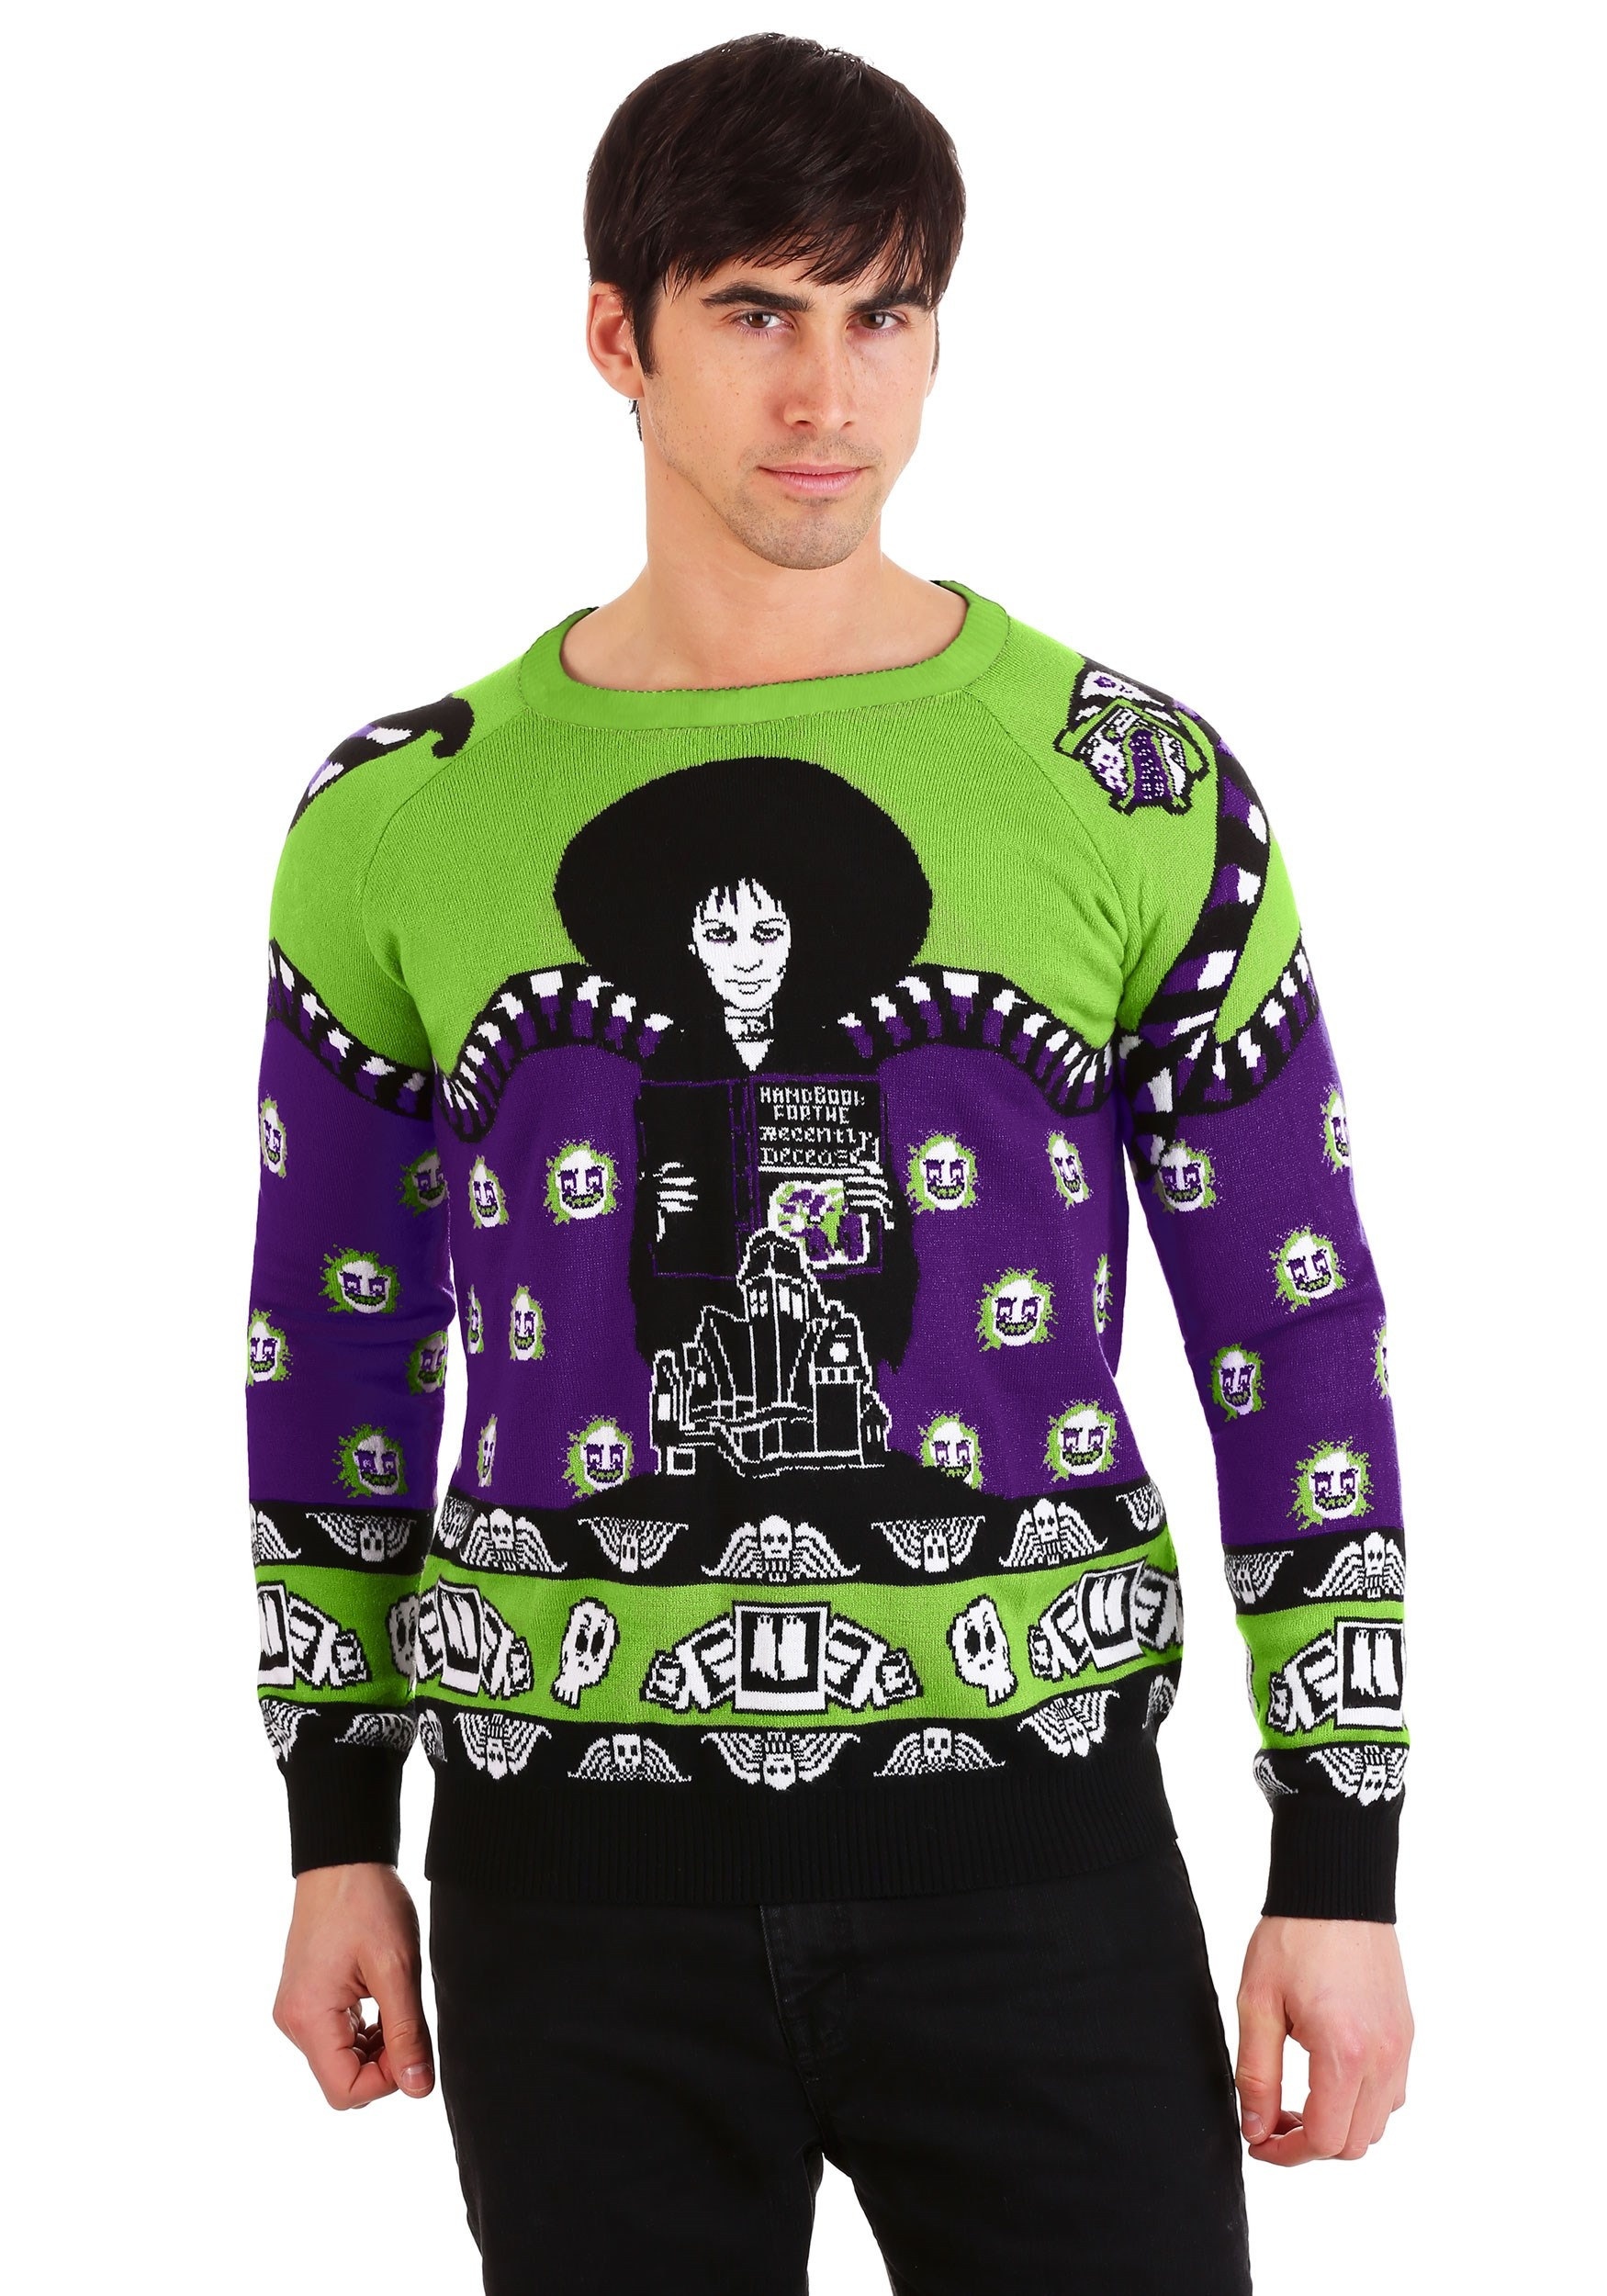 Beetlejuice Lydia Deetz Ugly Halloween Sweater